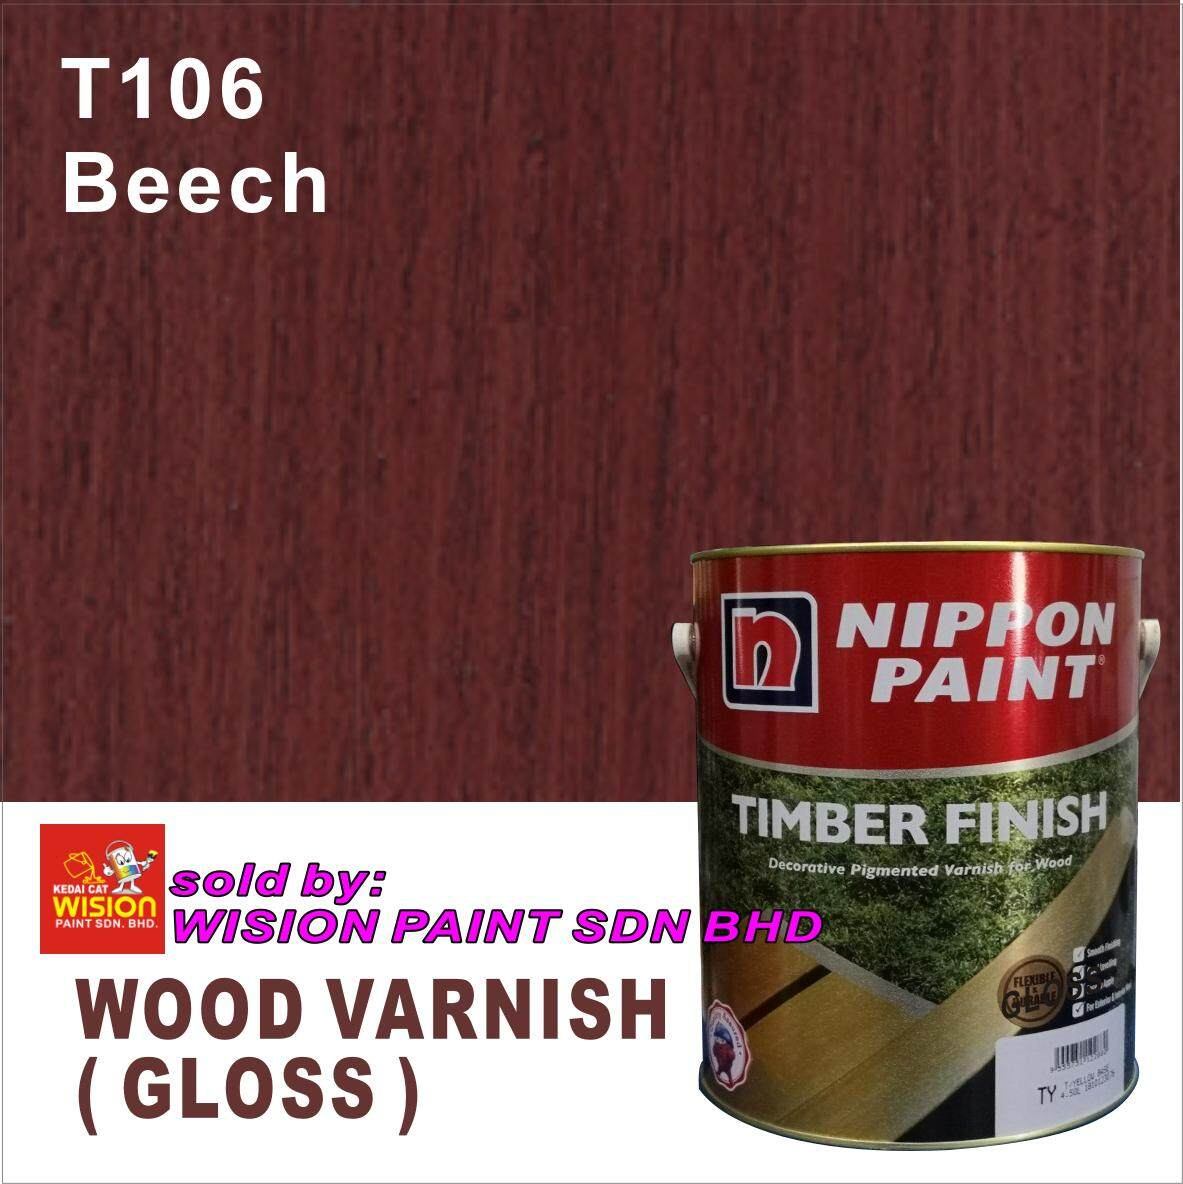 BEACH T106 ( 5L ) NIPPON PAINT TIMBER FINISH GLOSS DECORATIVE PIGMENTED VARNISH FOR WOOD WOOD SATIN